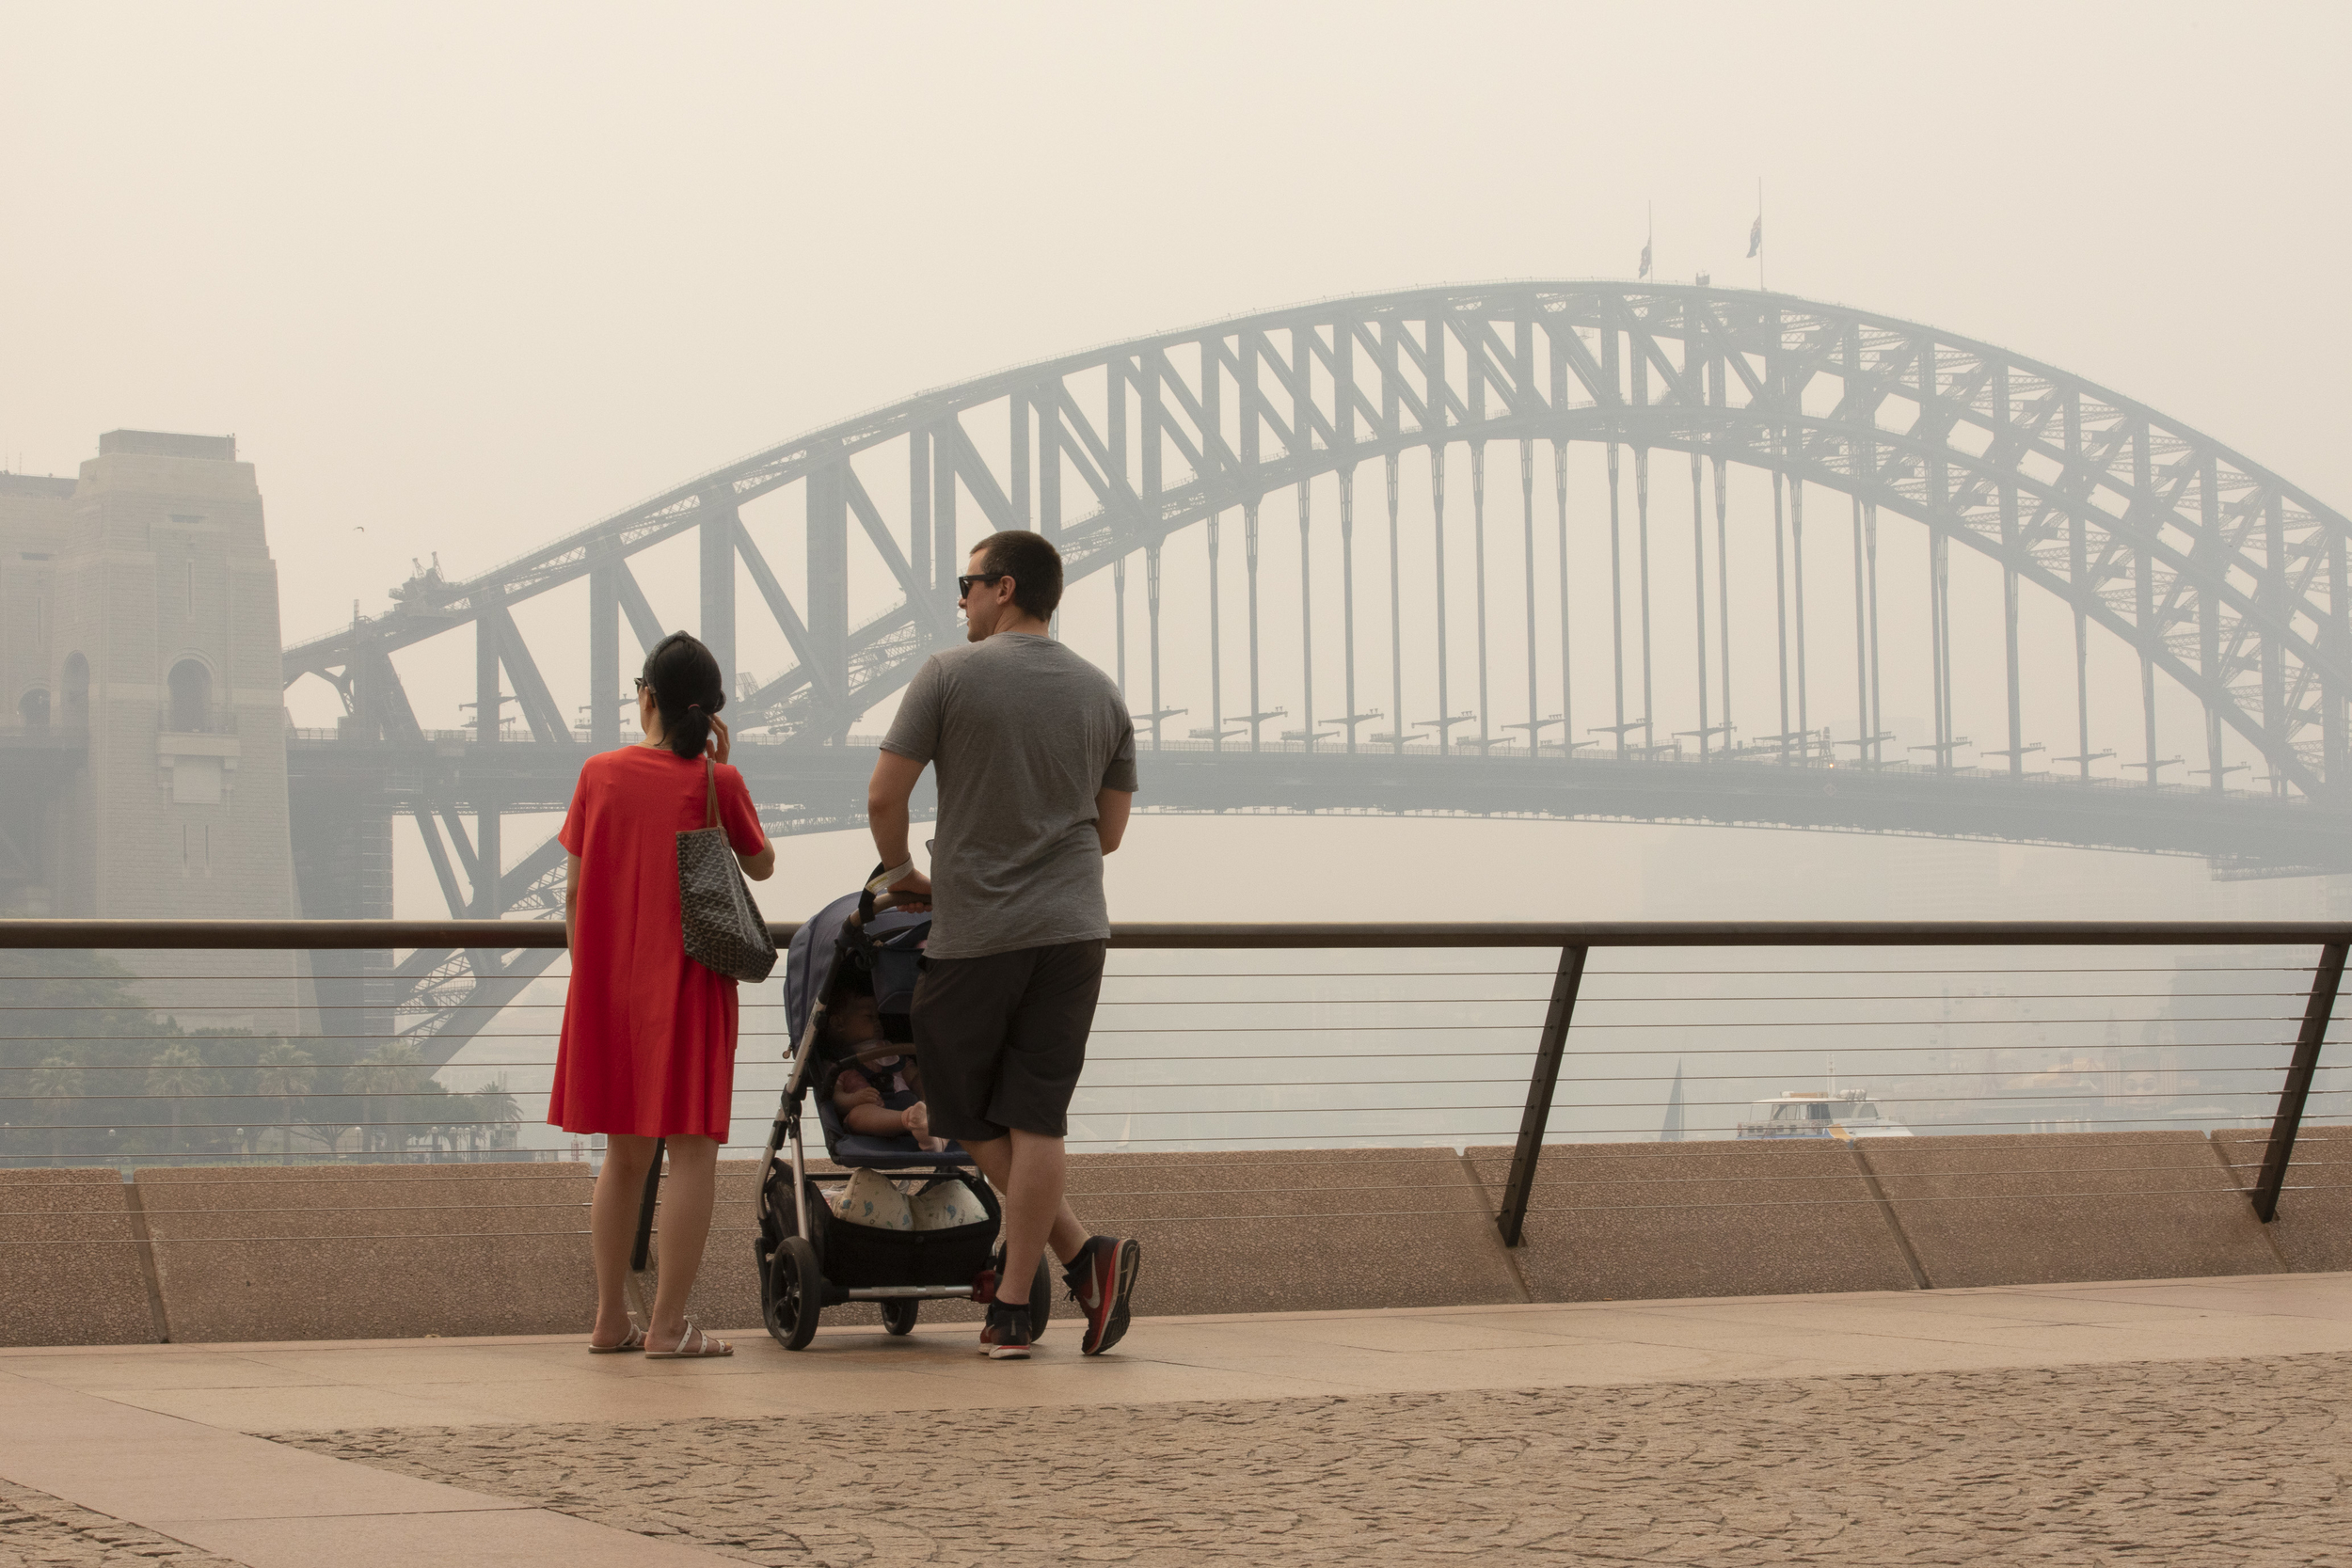 A couple with a pram look over a haze-filled Sydney harbour with the iconic Sydney Harbour Bridge just visible.